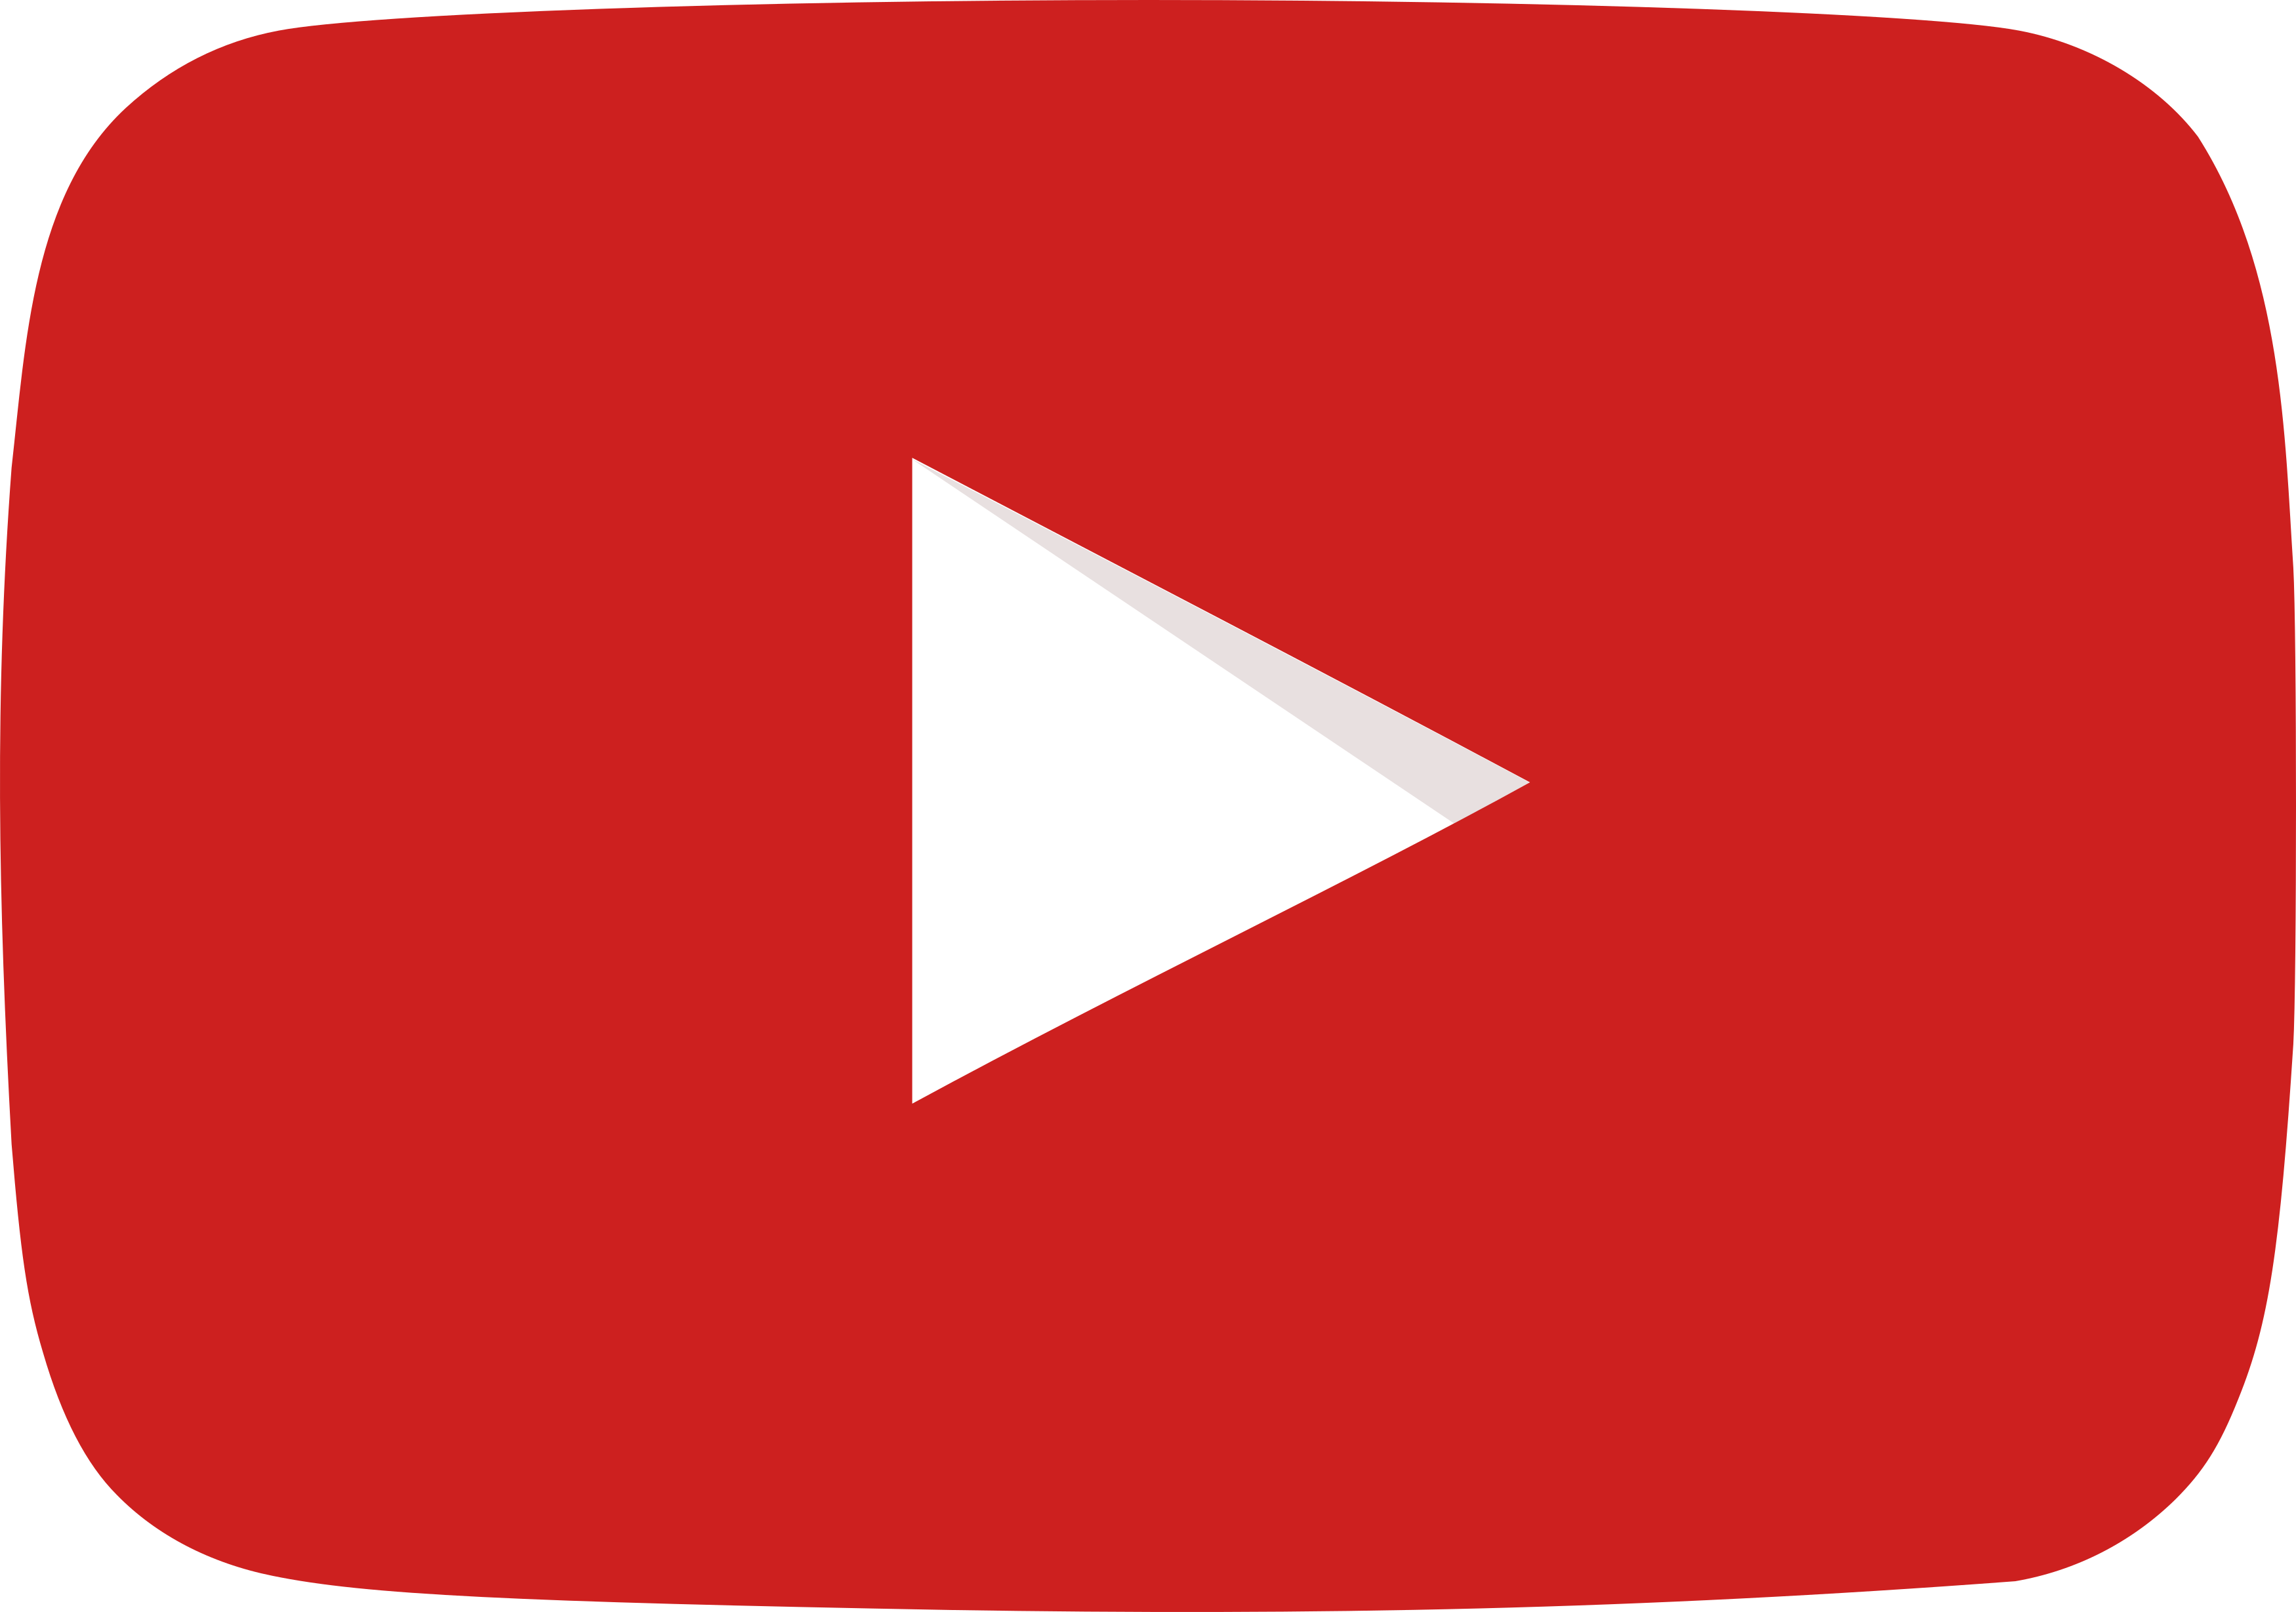 Imagens png youtube clipart images gallery for free download.